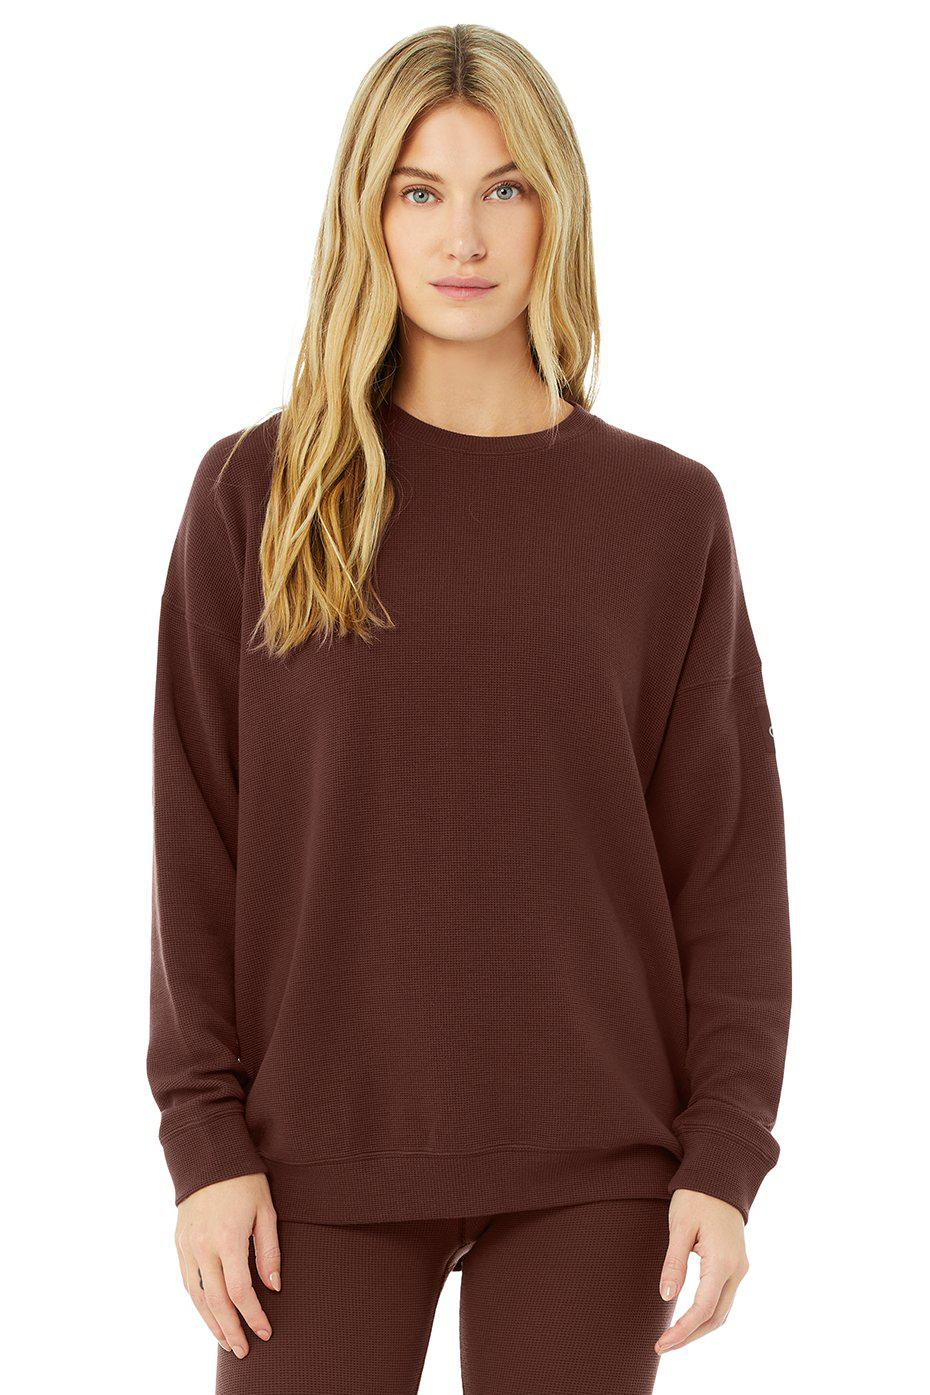 Micro Waffle Relaxation Pullover - Cherry Cola